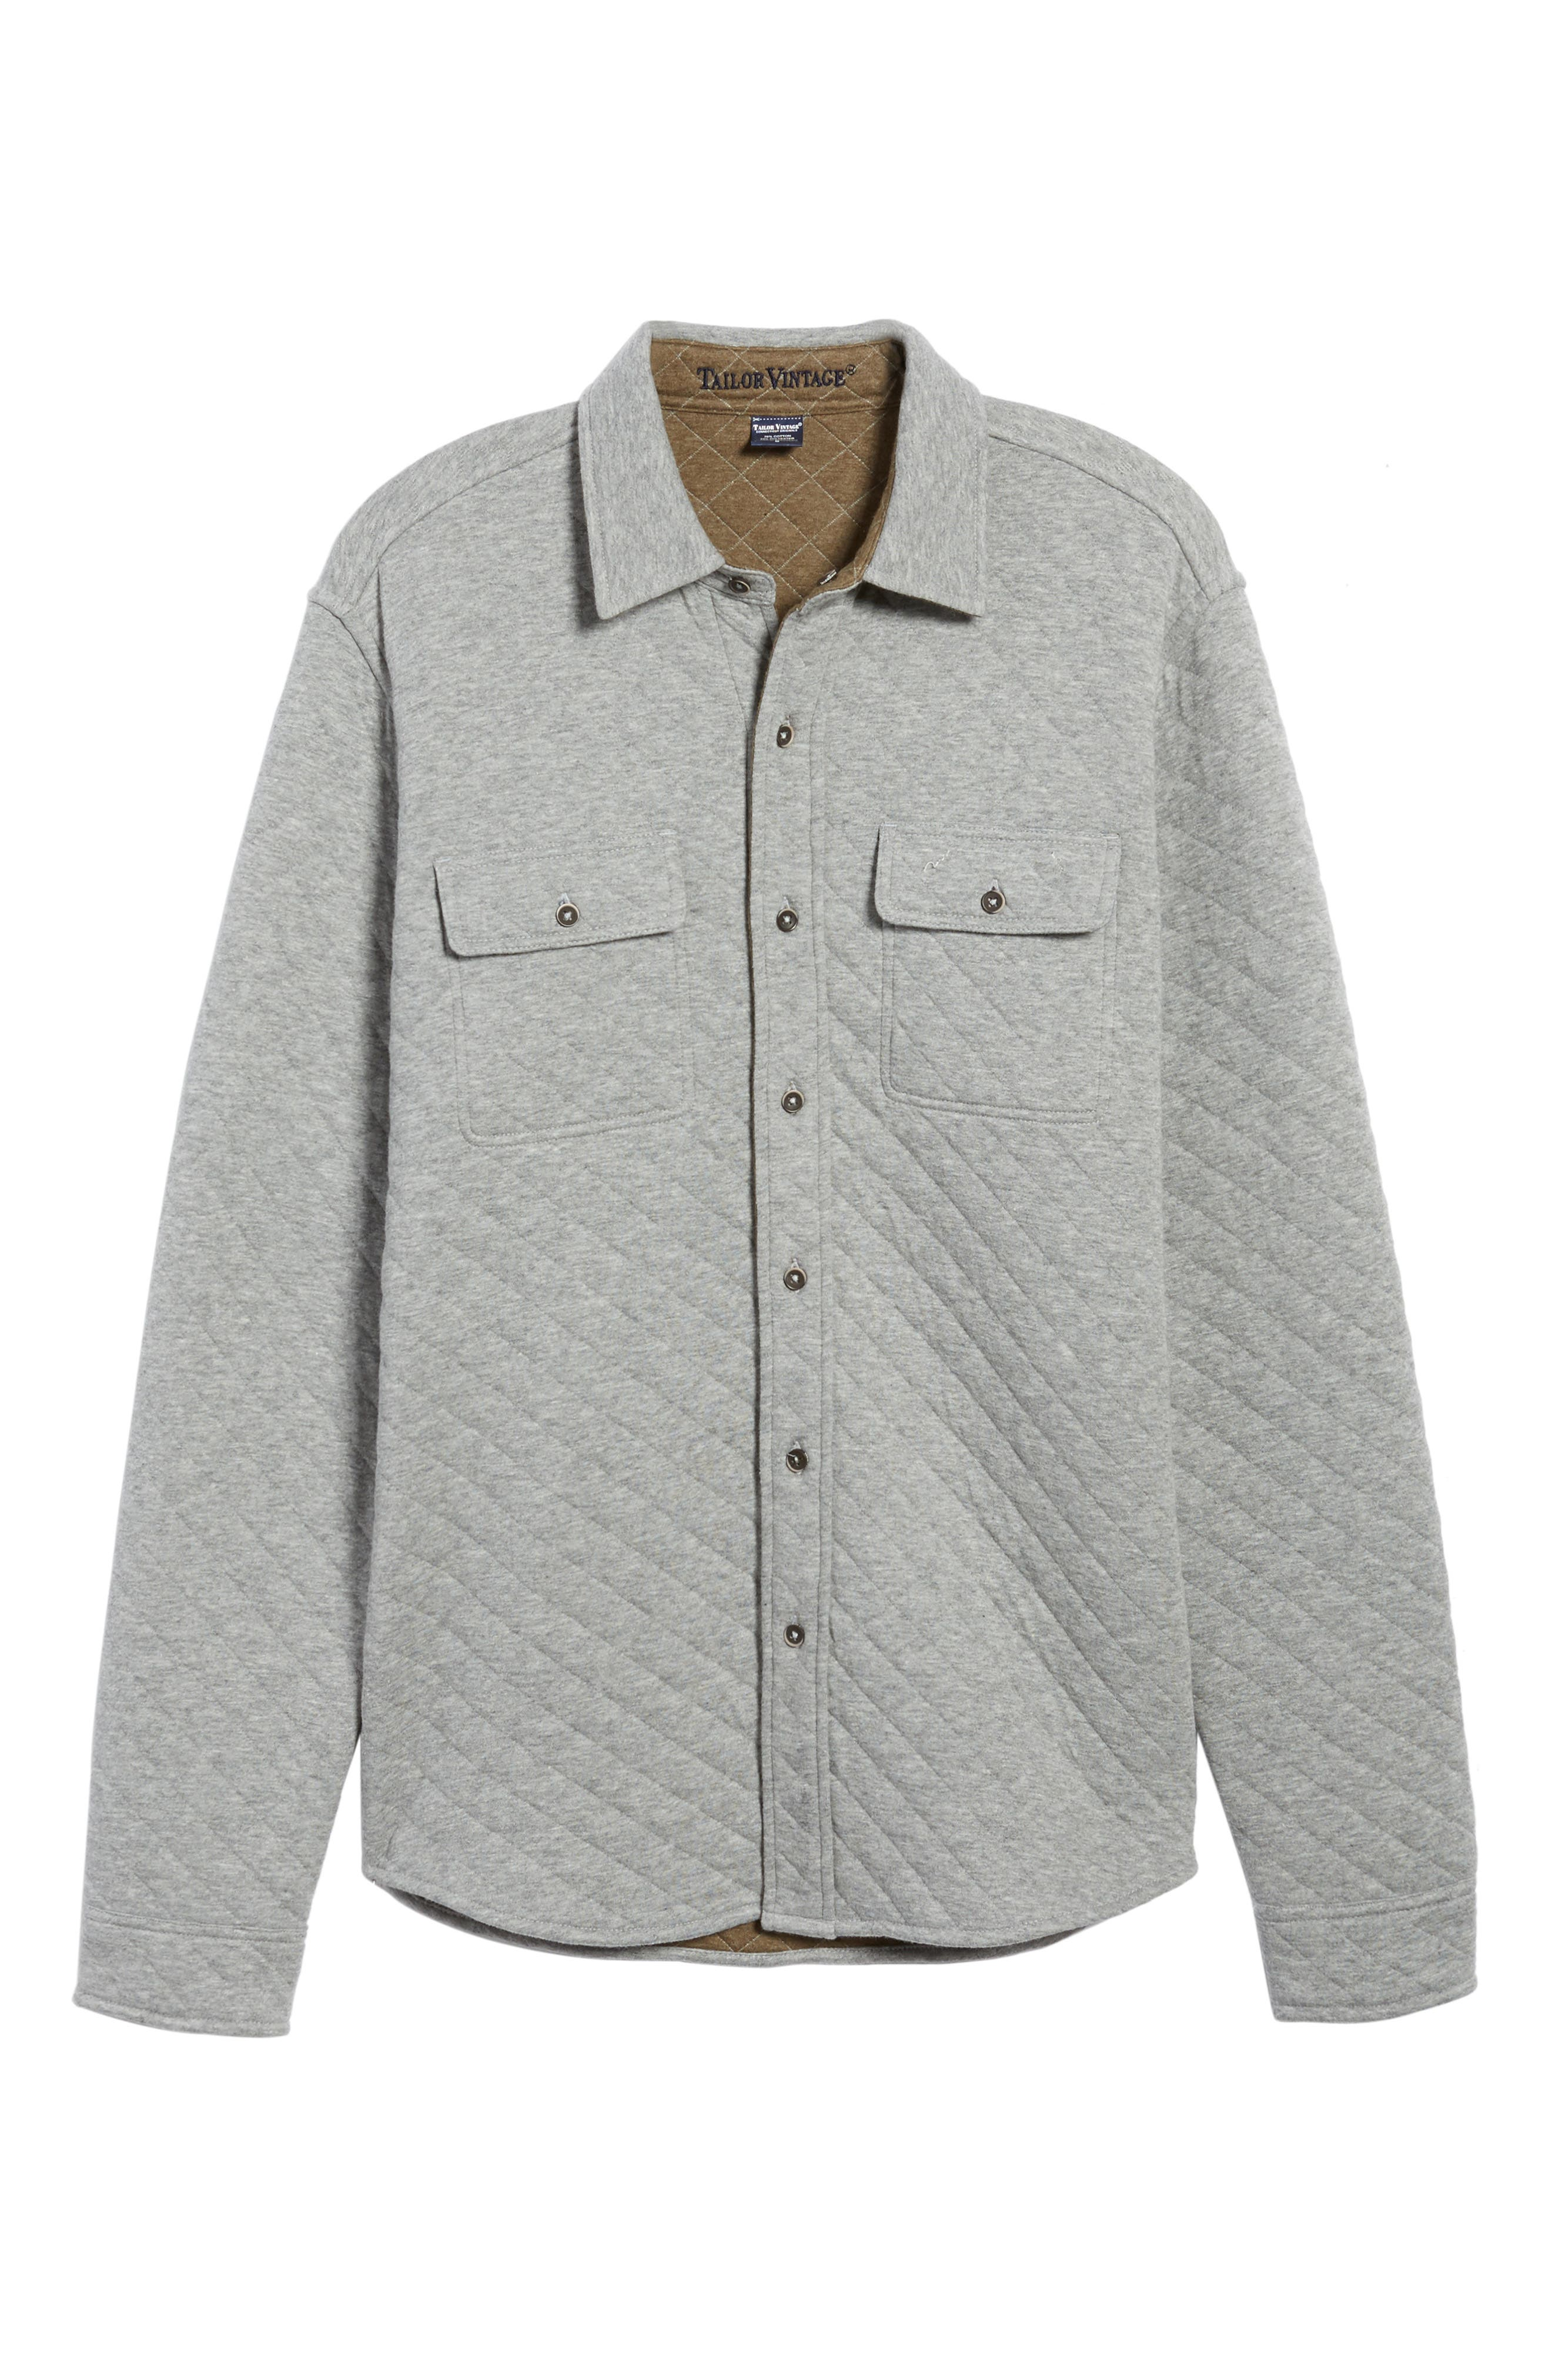 Reversible Double-Face Quilted Shirt,                             Alternate thumbnail 6, color,                             Med Grey Htr/ Army Htr Quilted